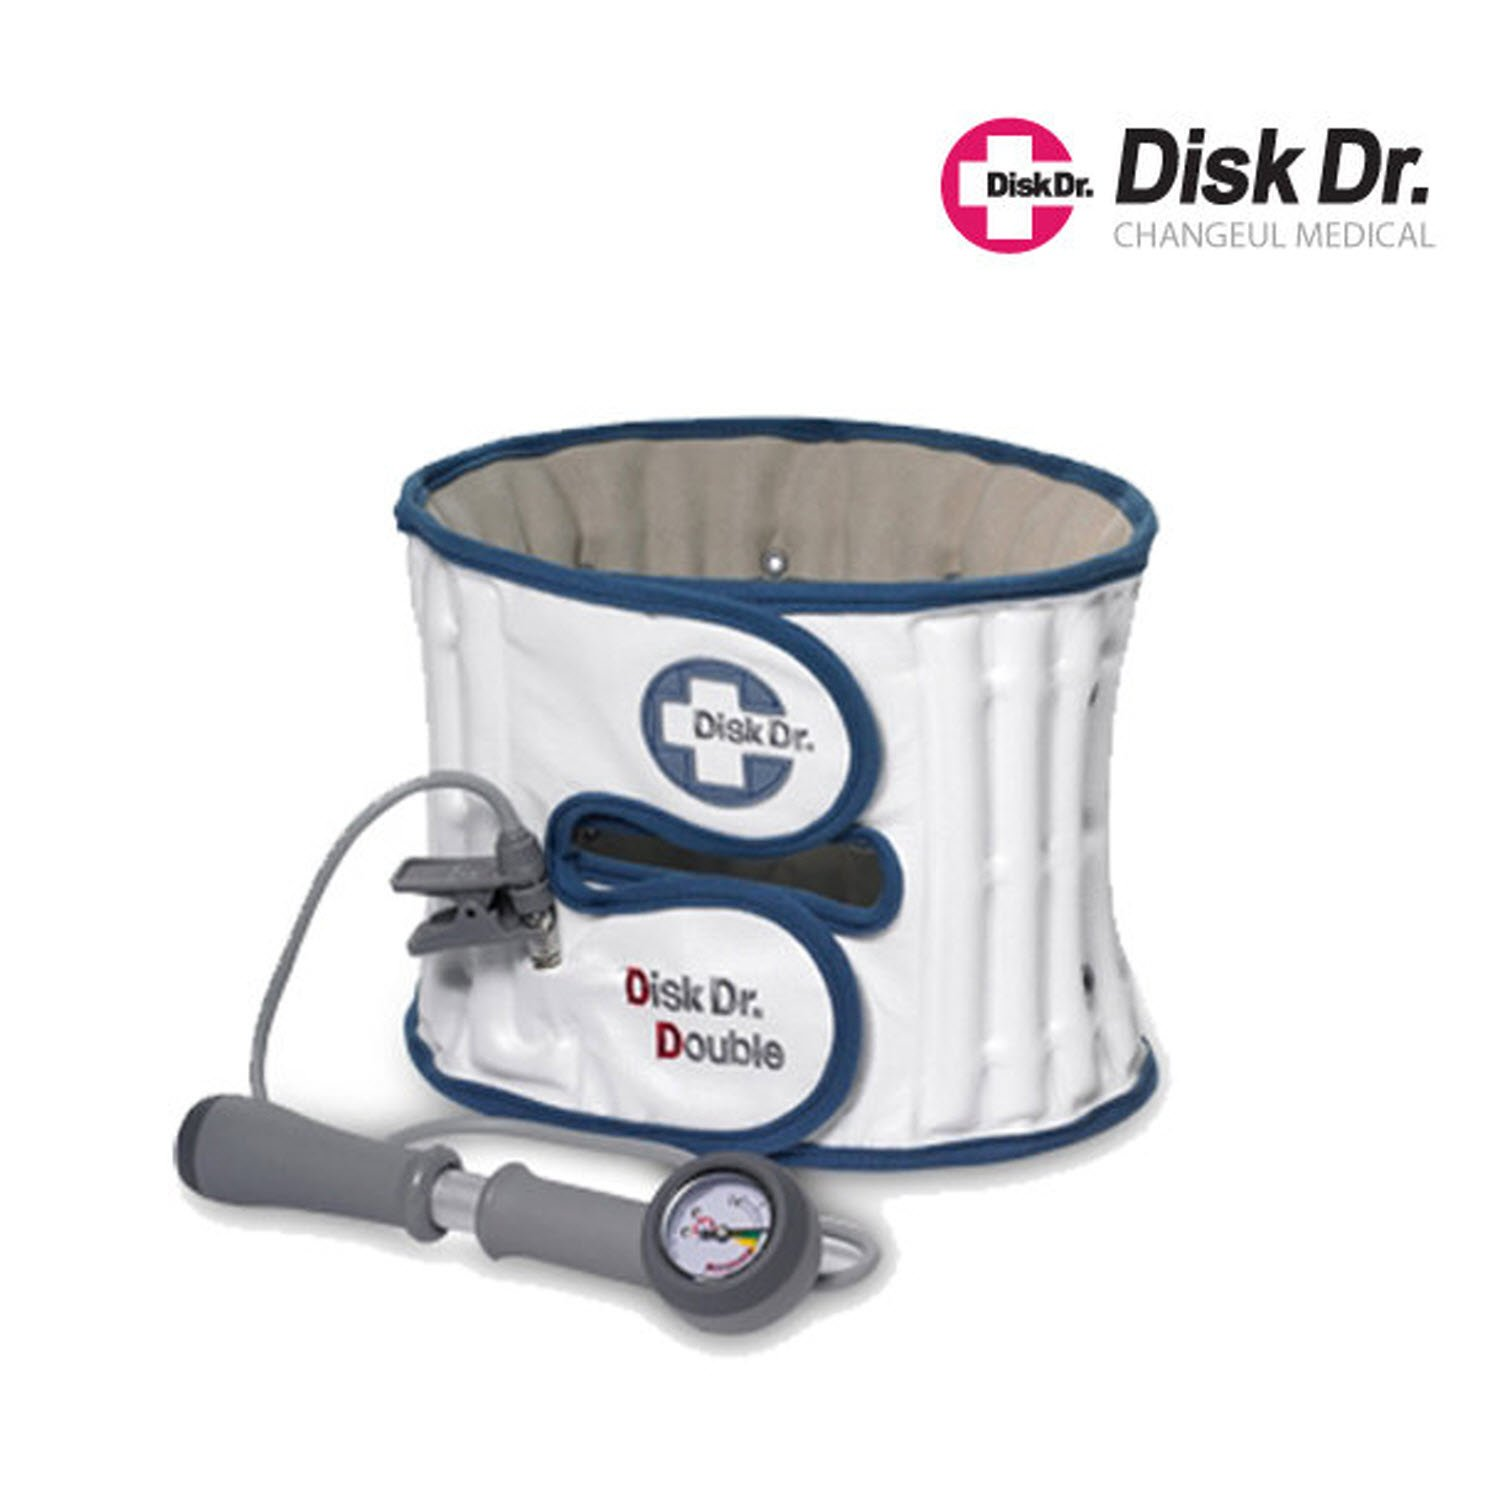 Disk Dr WG50 Double Waist Disc Support Belt (XL (84-91cm) or (34-36 inch))